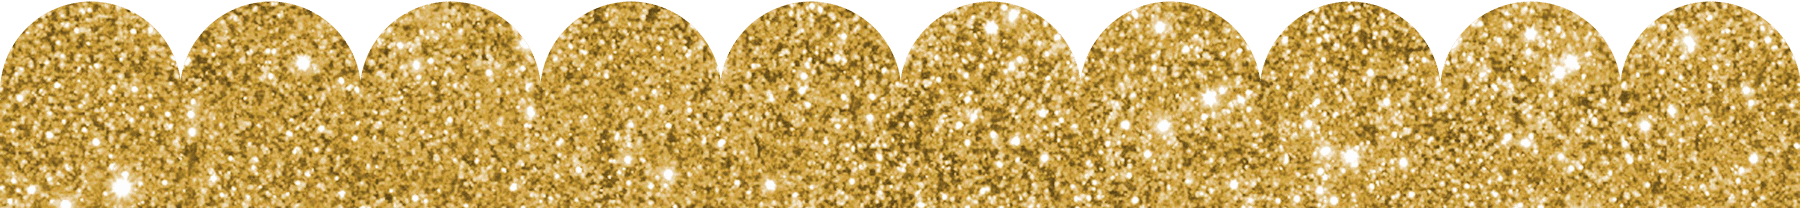 Gold glitter border png. Scalloped templates in any